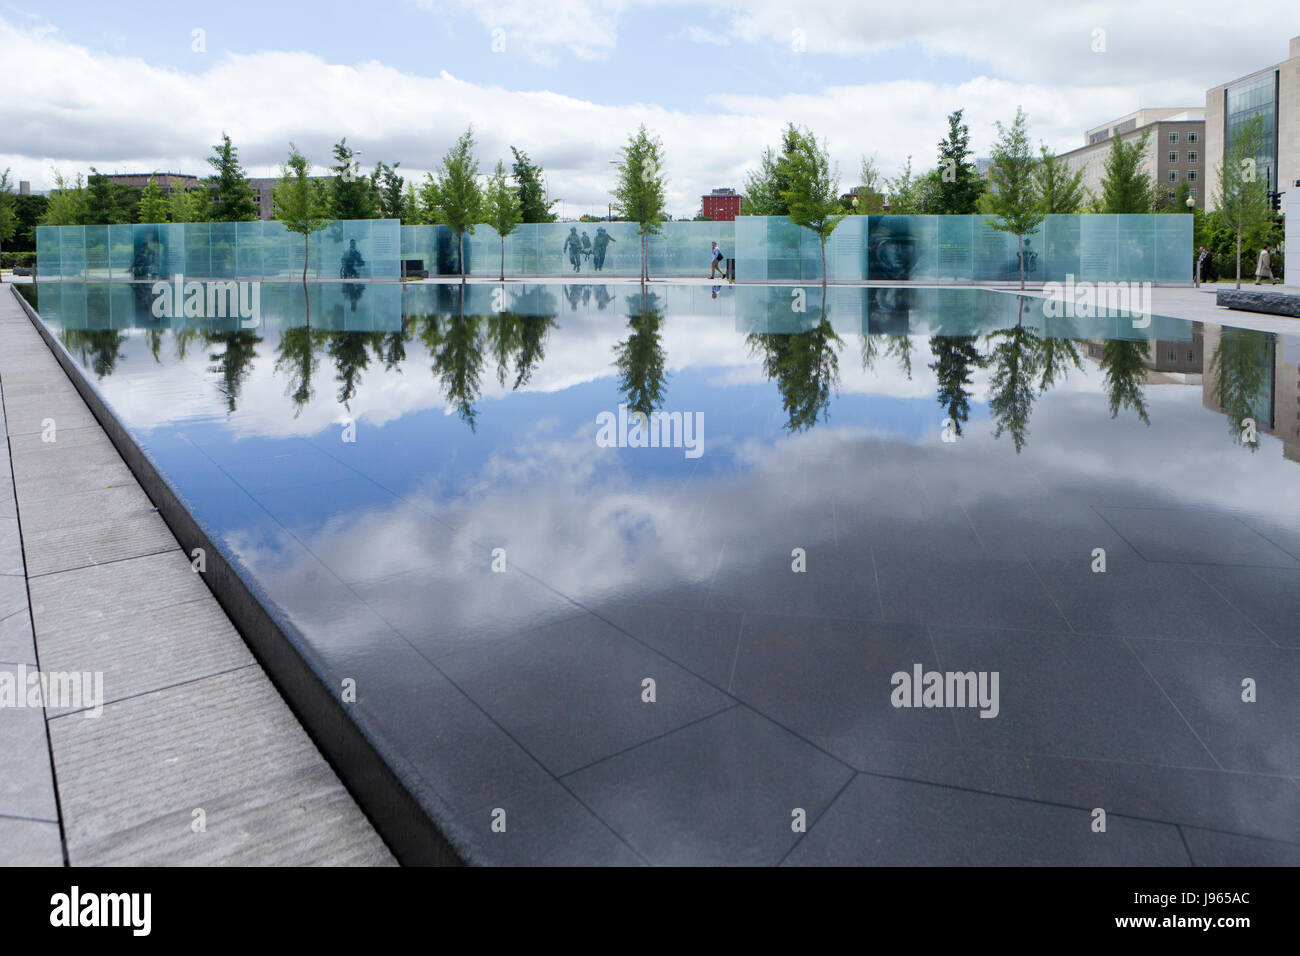 The American Veterans Disabled for Life Memorial - Washington, DC USA - Stock Image